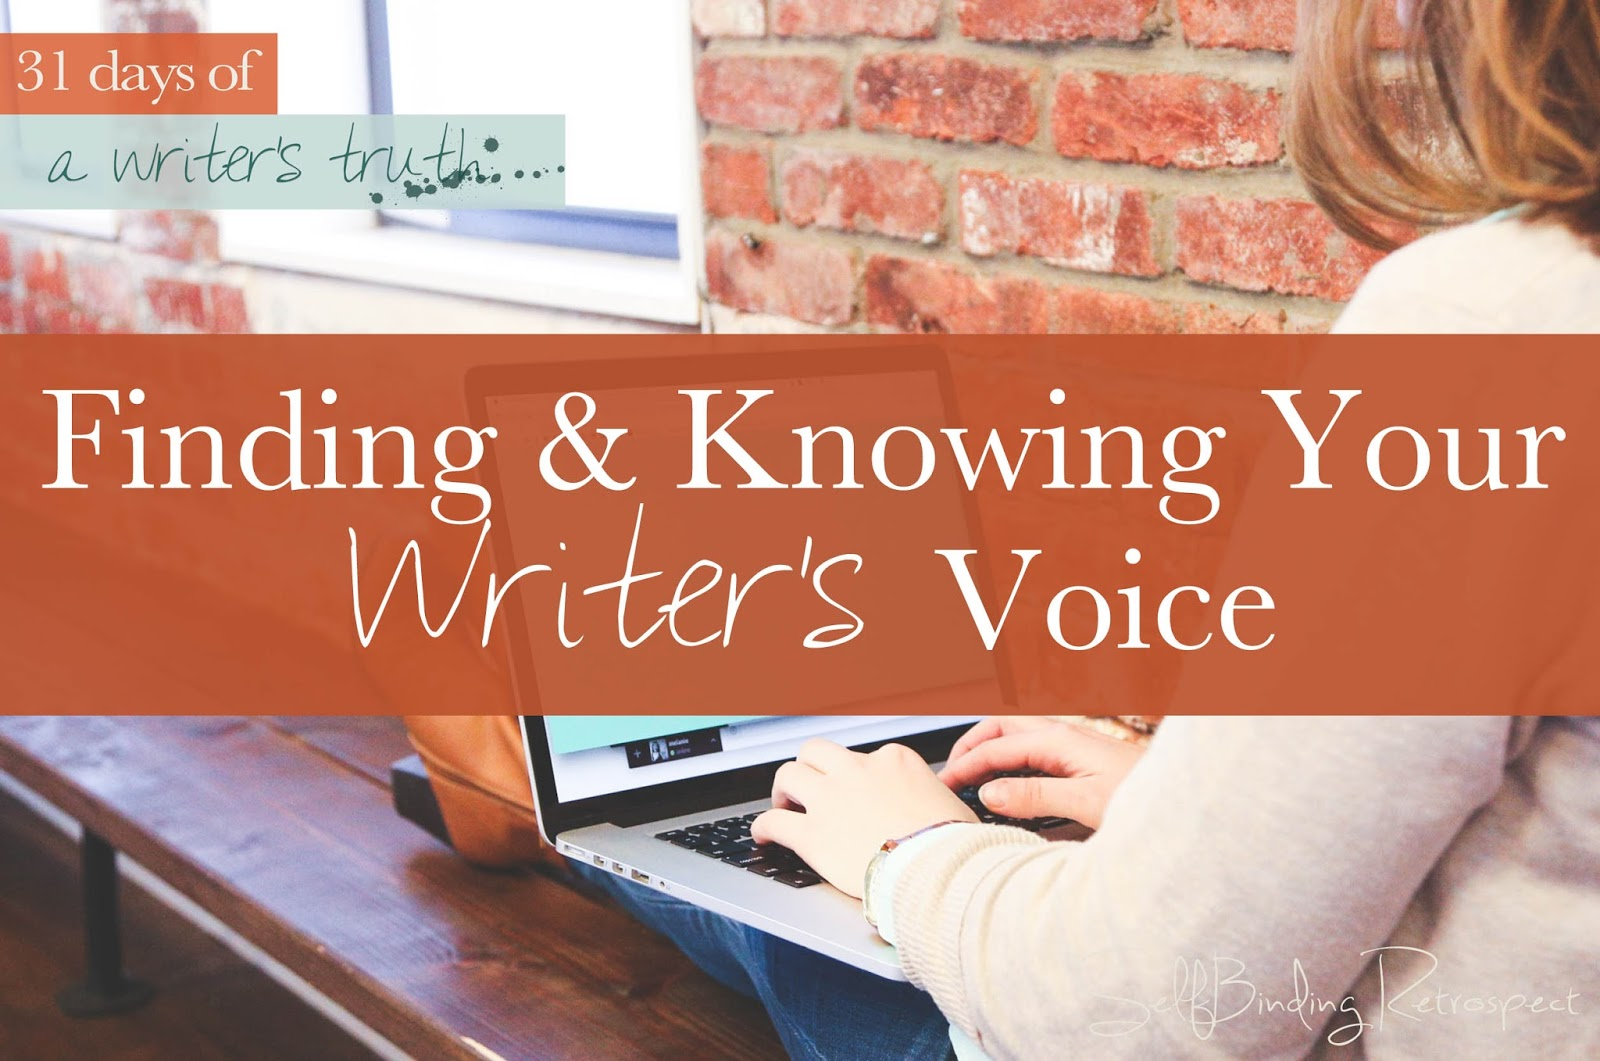 finding and knowing your writer's voice #write31days